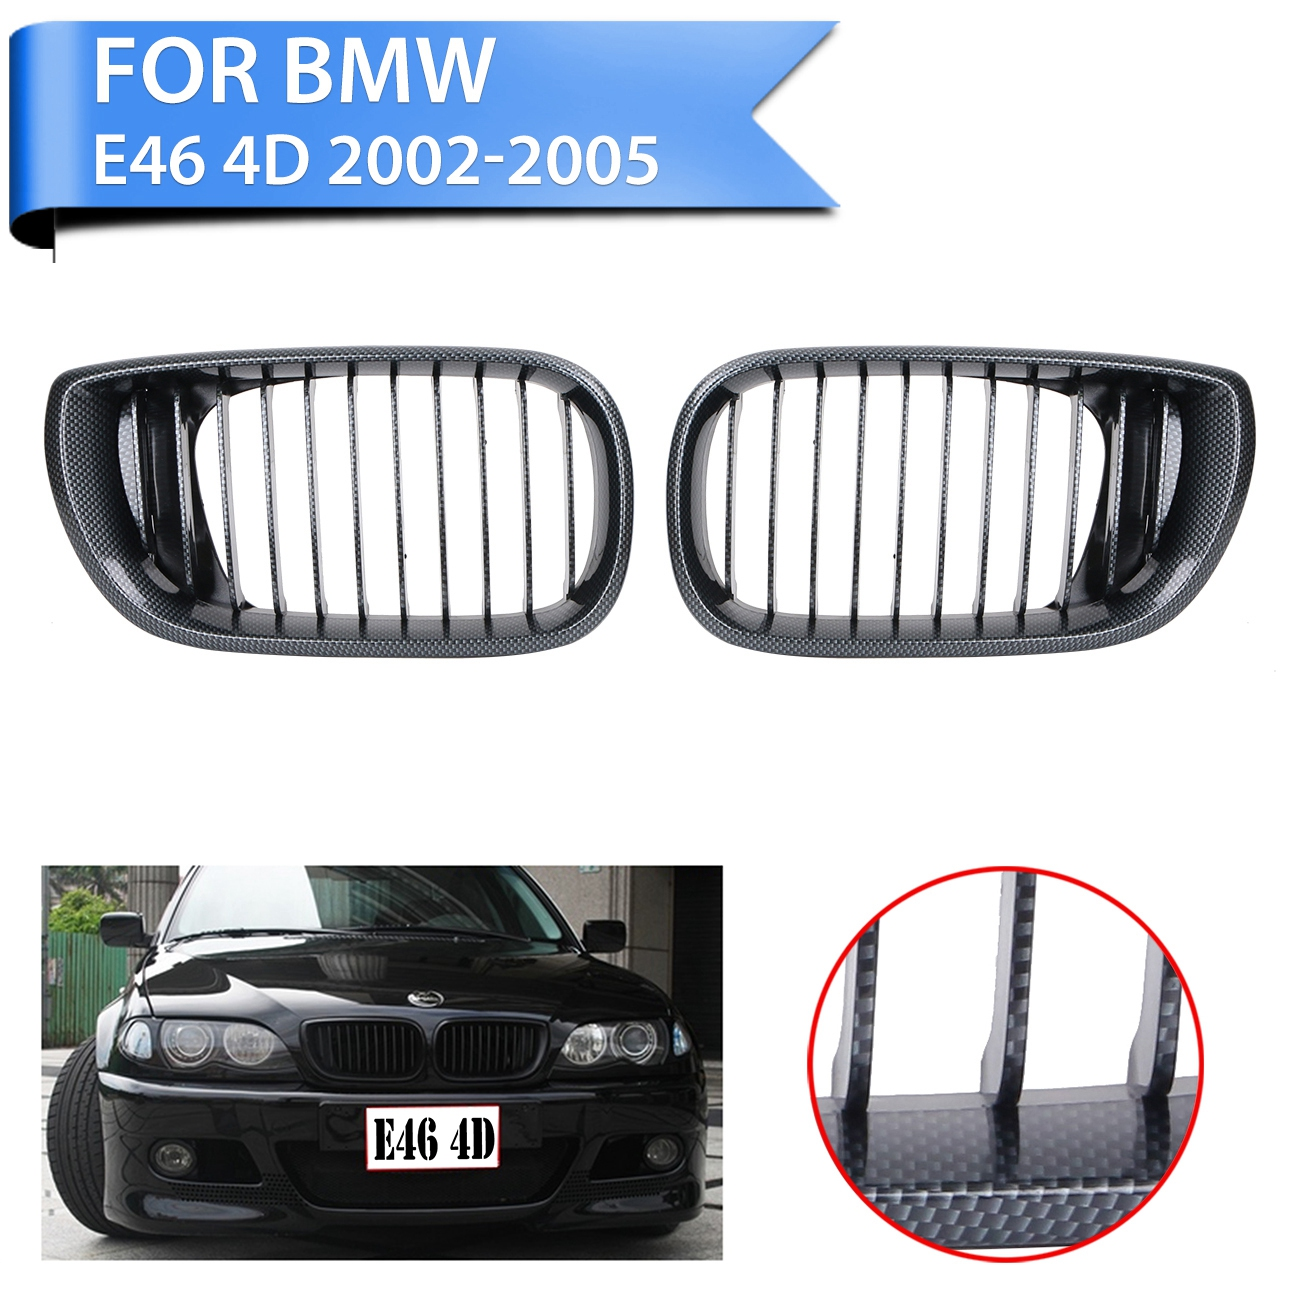 2pc carbon look front kidney grill grille for bmw e46 320i 325i 325xi 330i 330xi 4